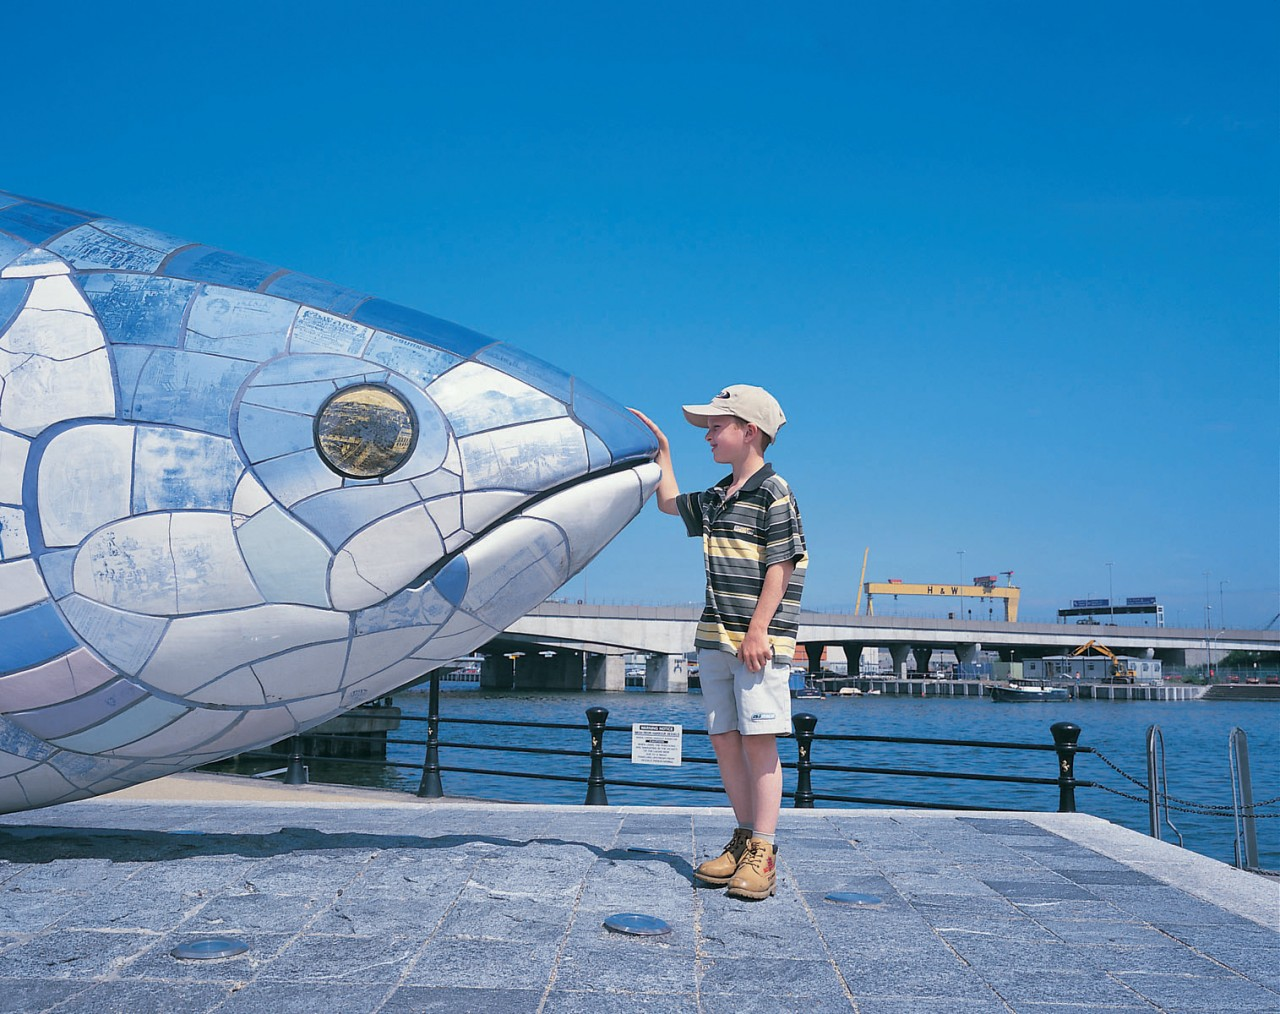 <p>Sculpture of giant fish</p>